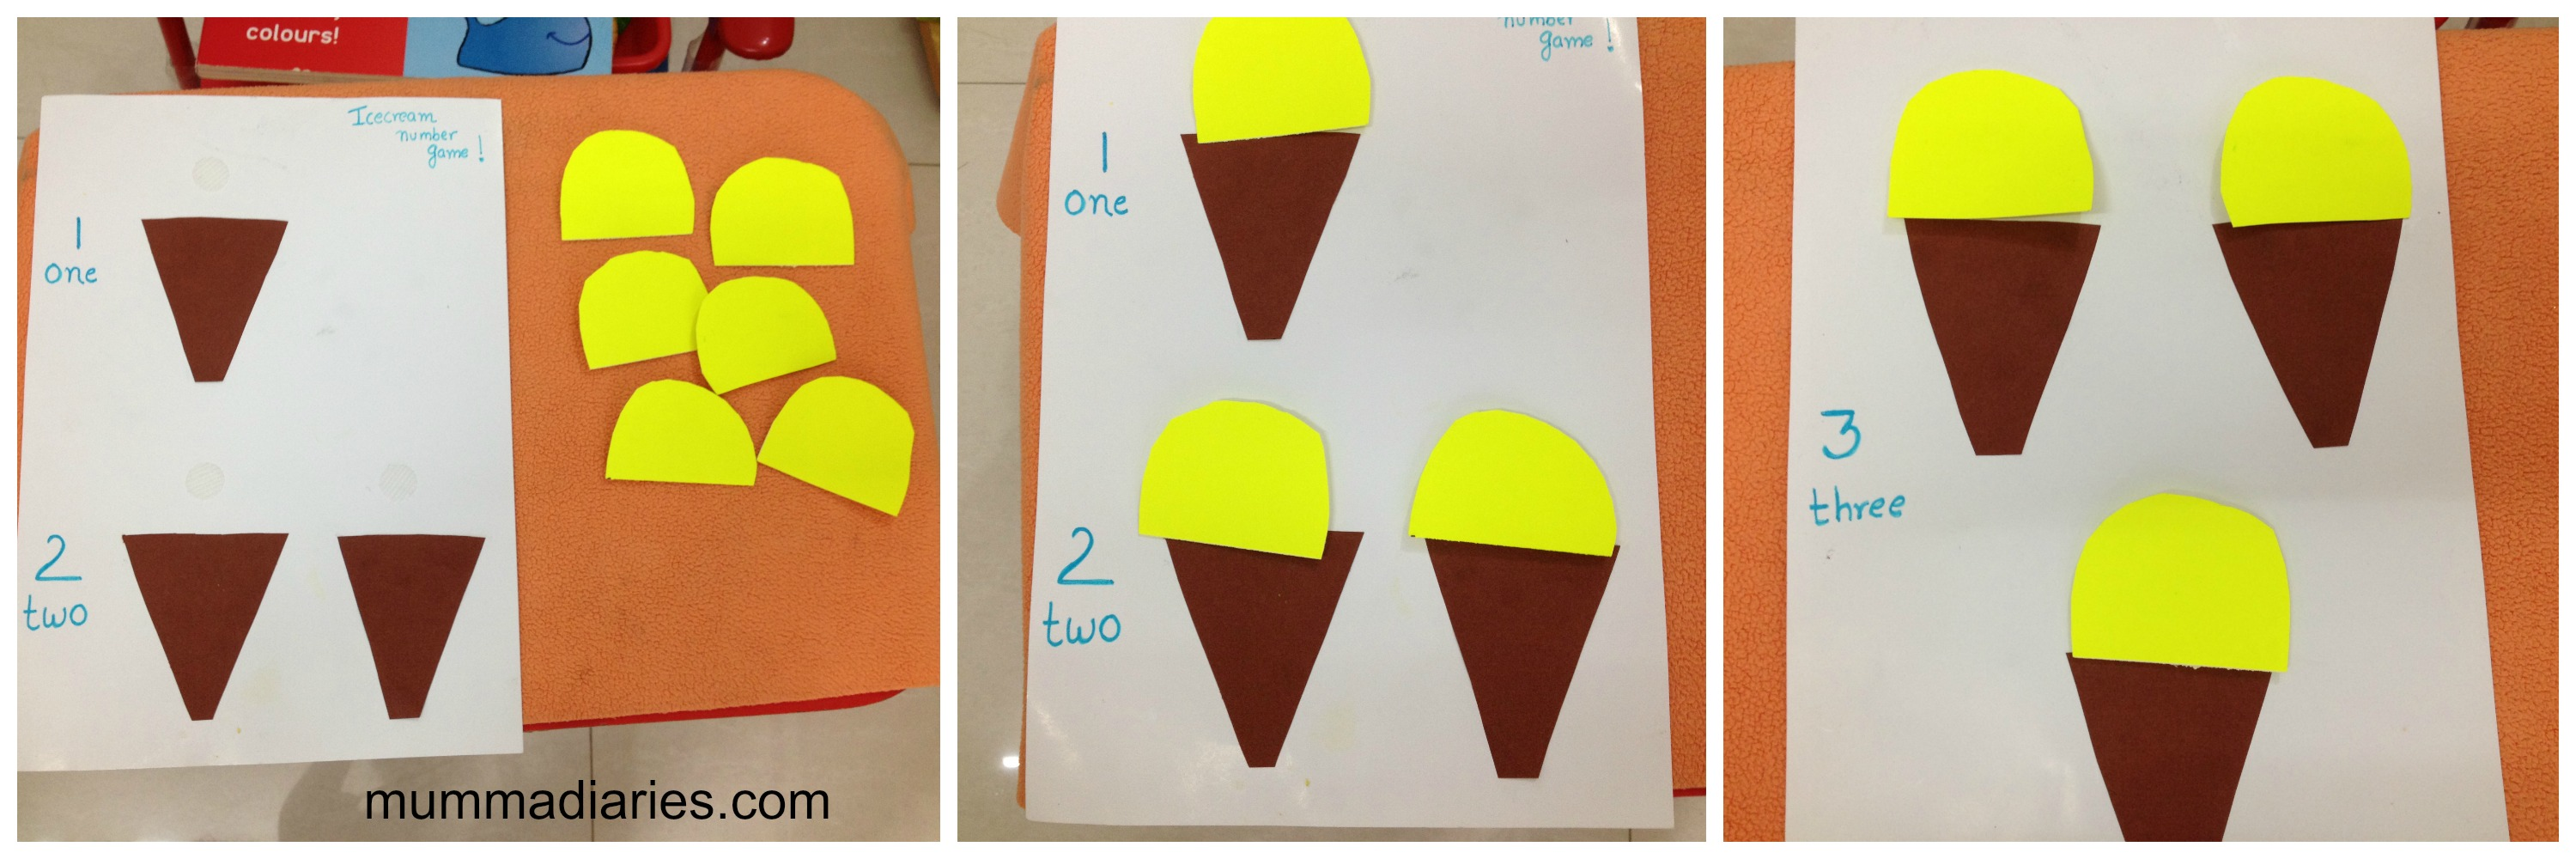 Activities for colors for toddlers - Icecream Counting Activity